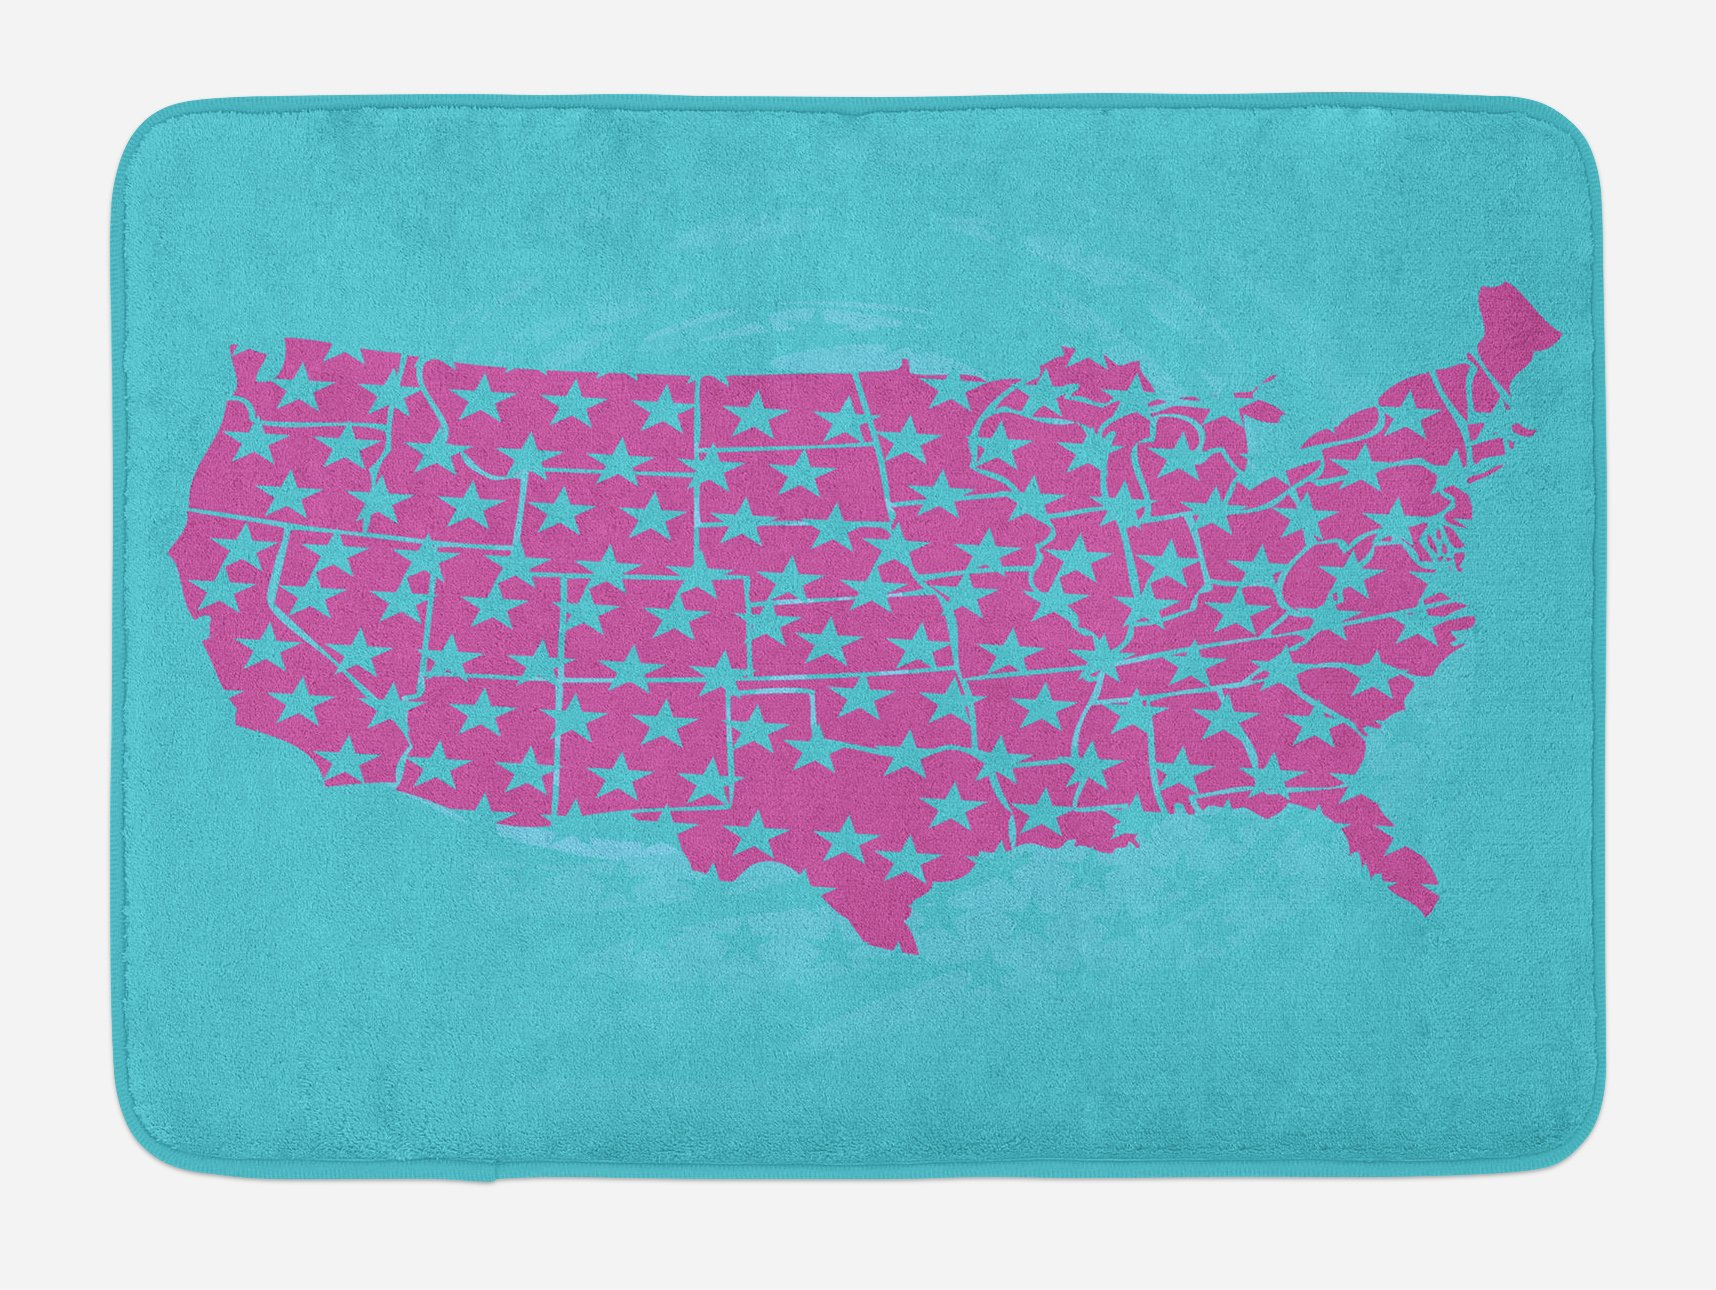 Lunarable USA Bath Mat, Pink Shade United States of America Map with Five Pointed Pentagram Stars Pattern, Plush Bathroom Decor Mat with Non Slip Backing, 29.5 W X 17.5 W Inches, Pale Blue Pink